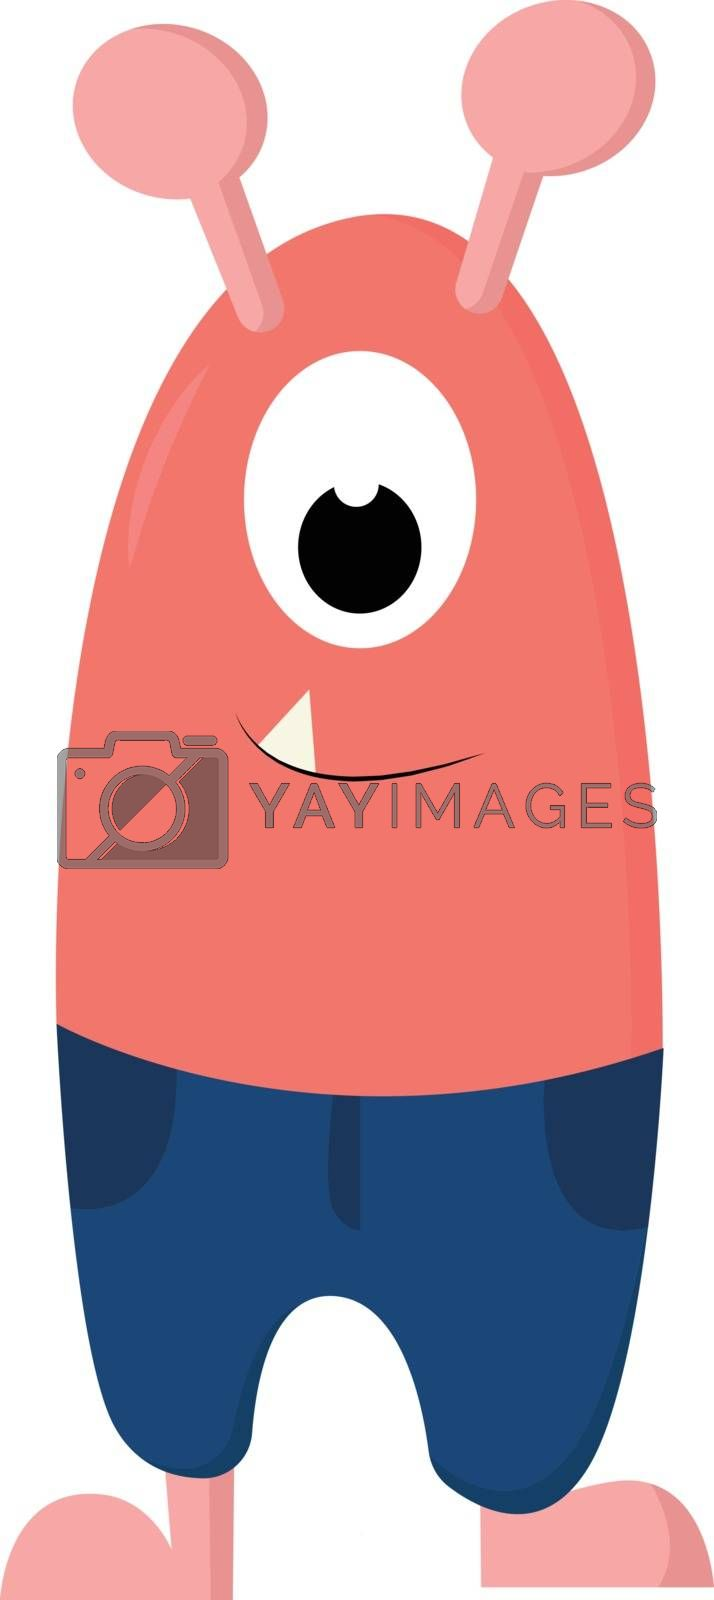 Royalty free image of Cartoon funny one-eyed pink monster in blue shorts vector or col by Morphart